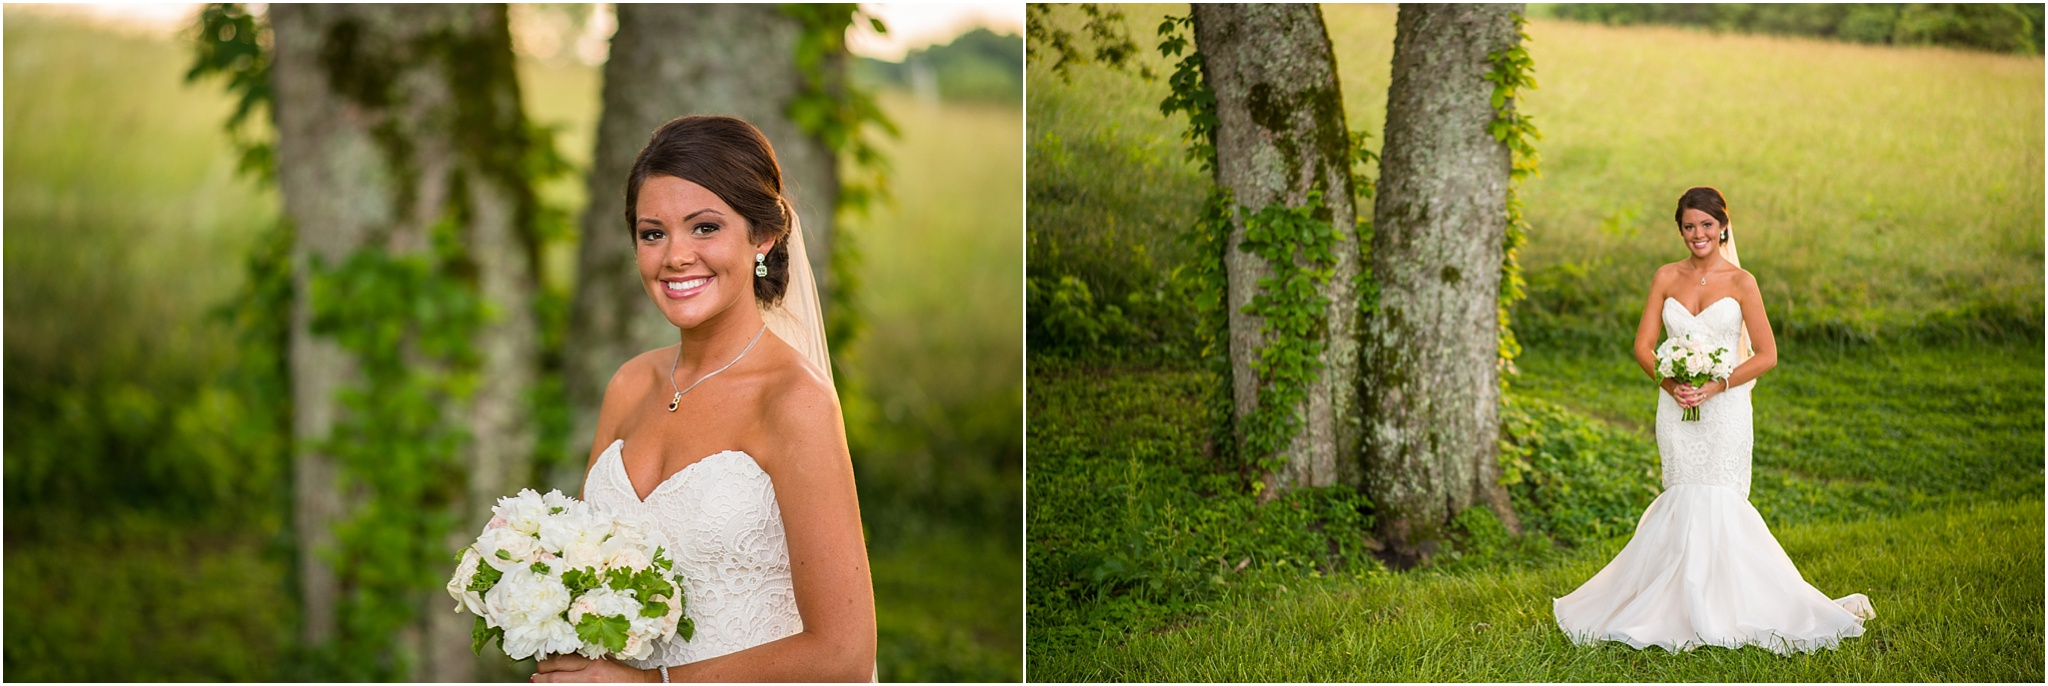 Greg Smit Photography Nashville wedding bridal photographer Mint Springs Farm 9